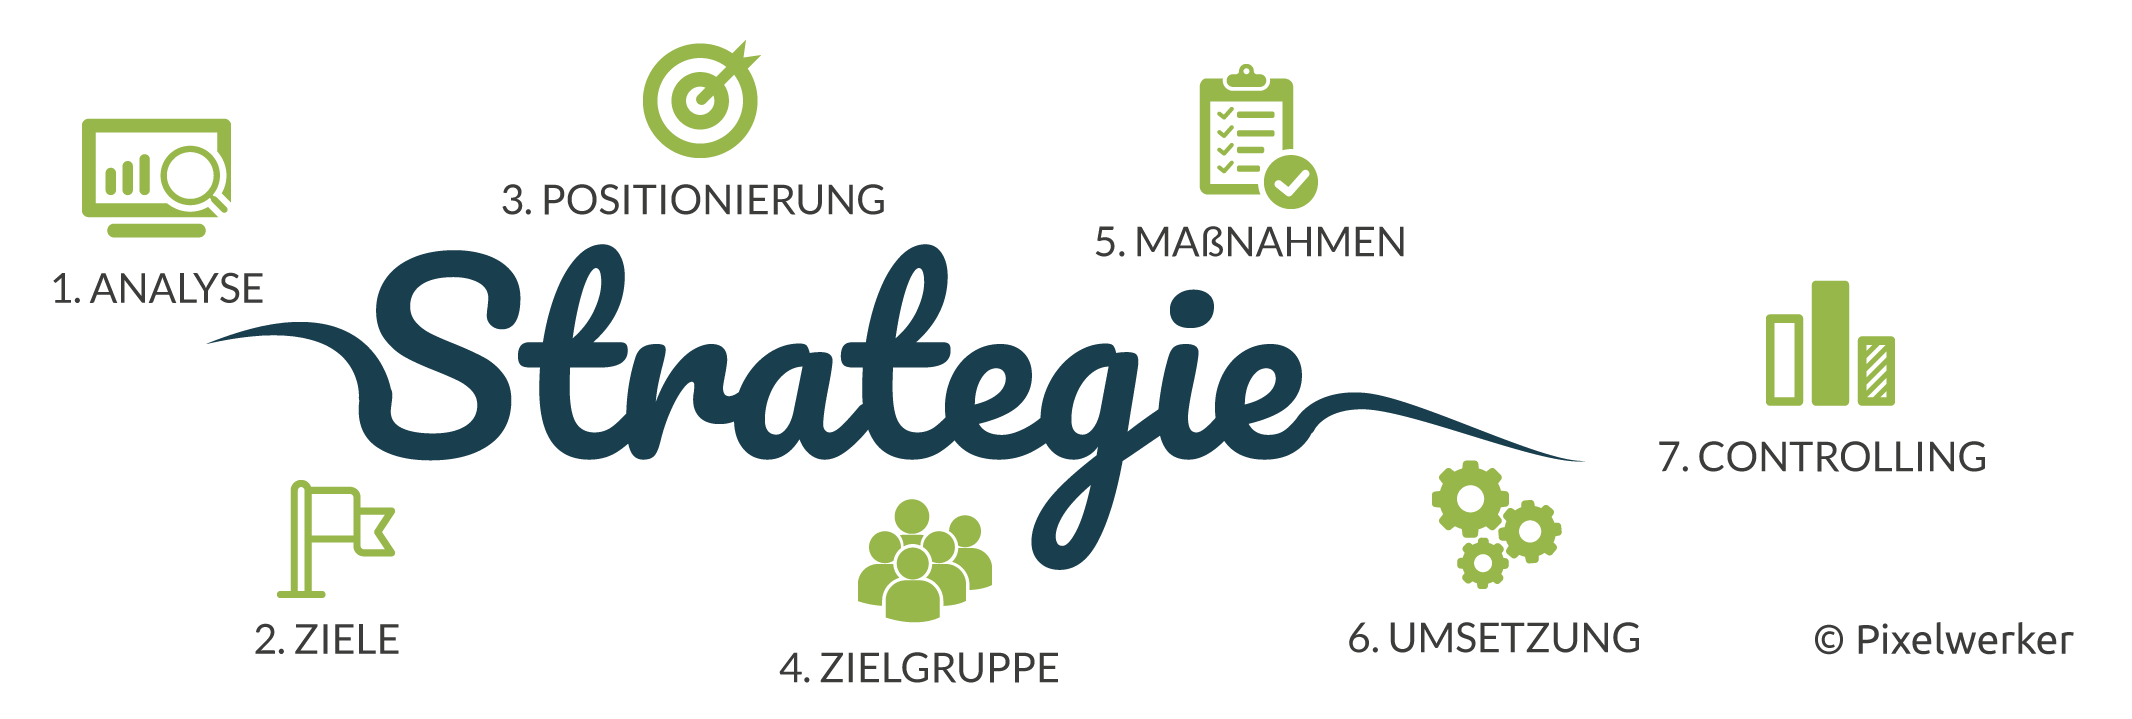 Erstellung einer Online-Marketing-Strategie